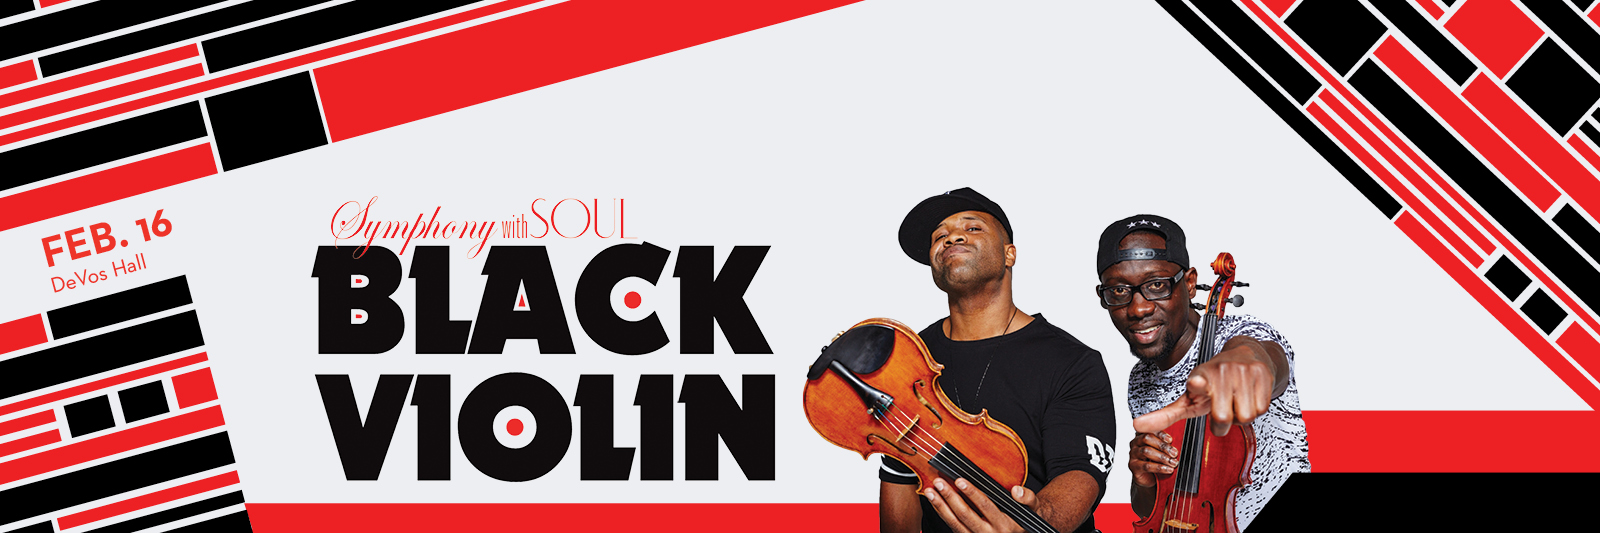 Symphony with Soul featuring Black Violin